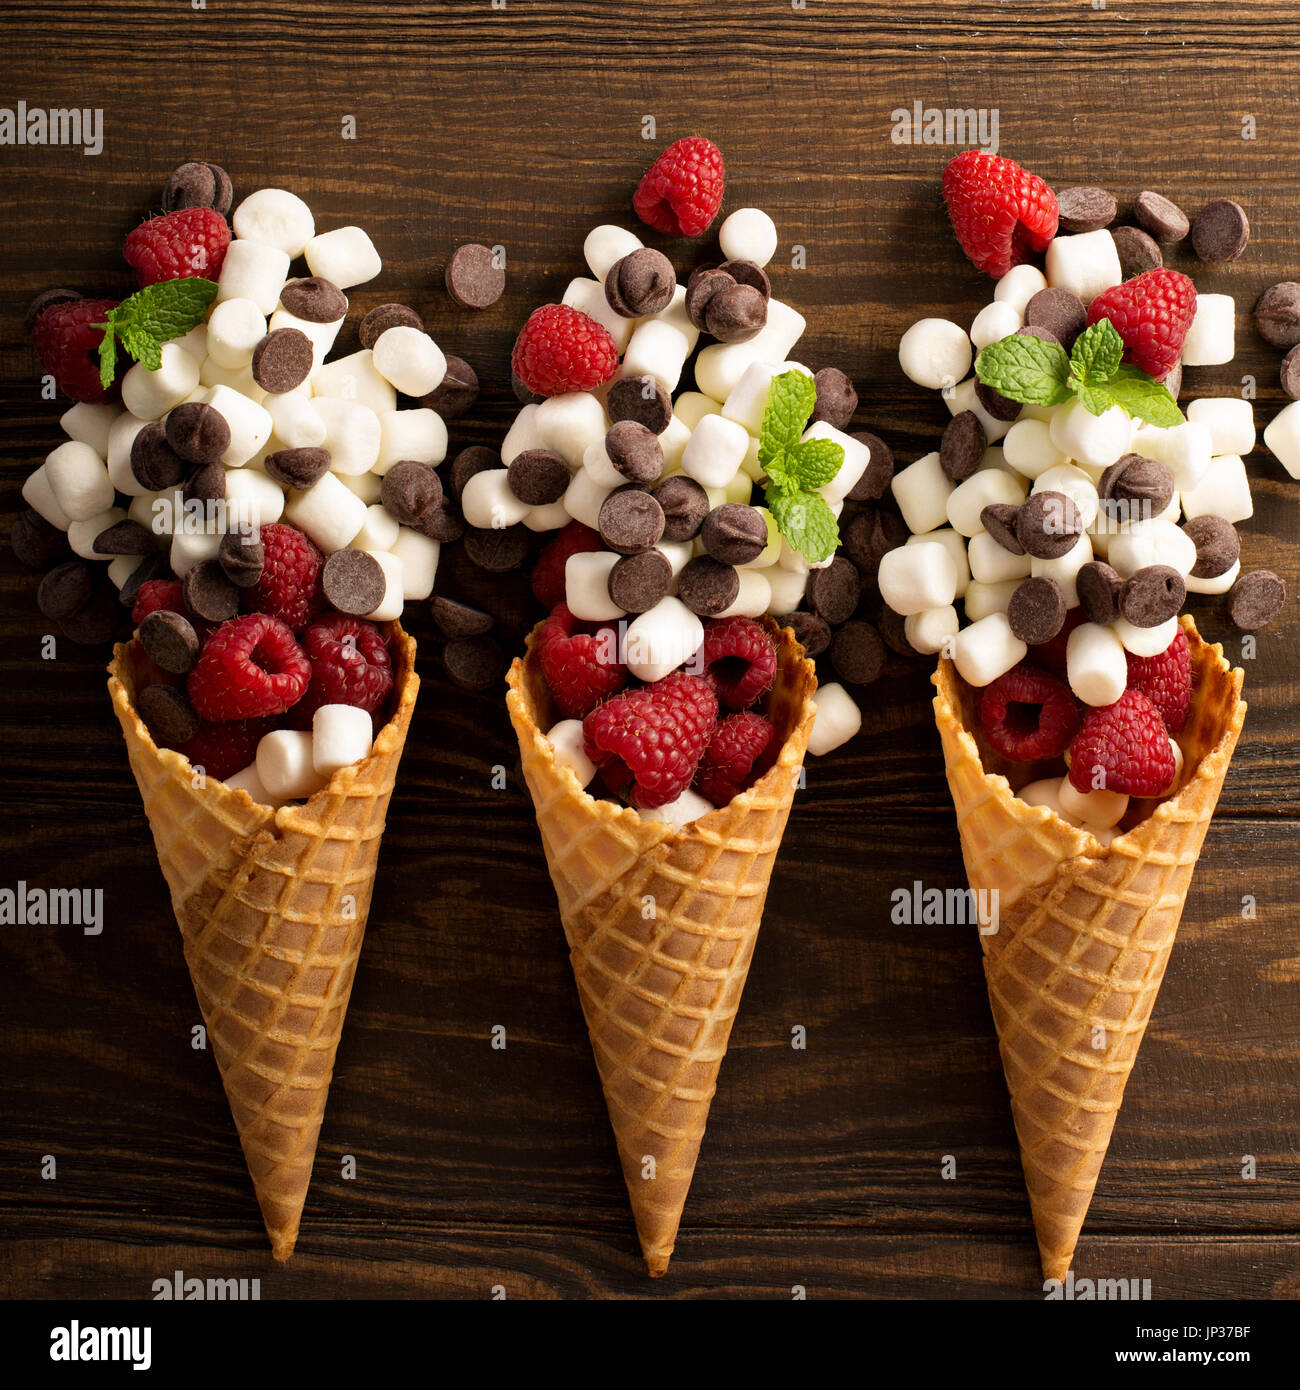 Ingrediens for smore's dessert in a waffle cone Stock Photo